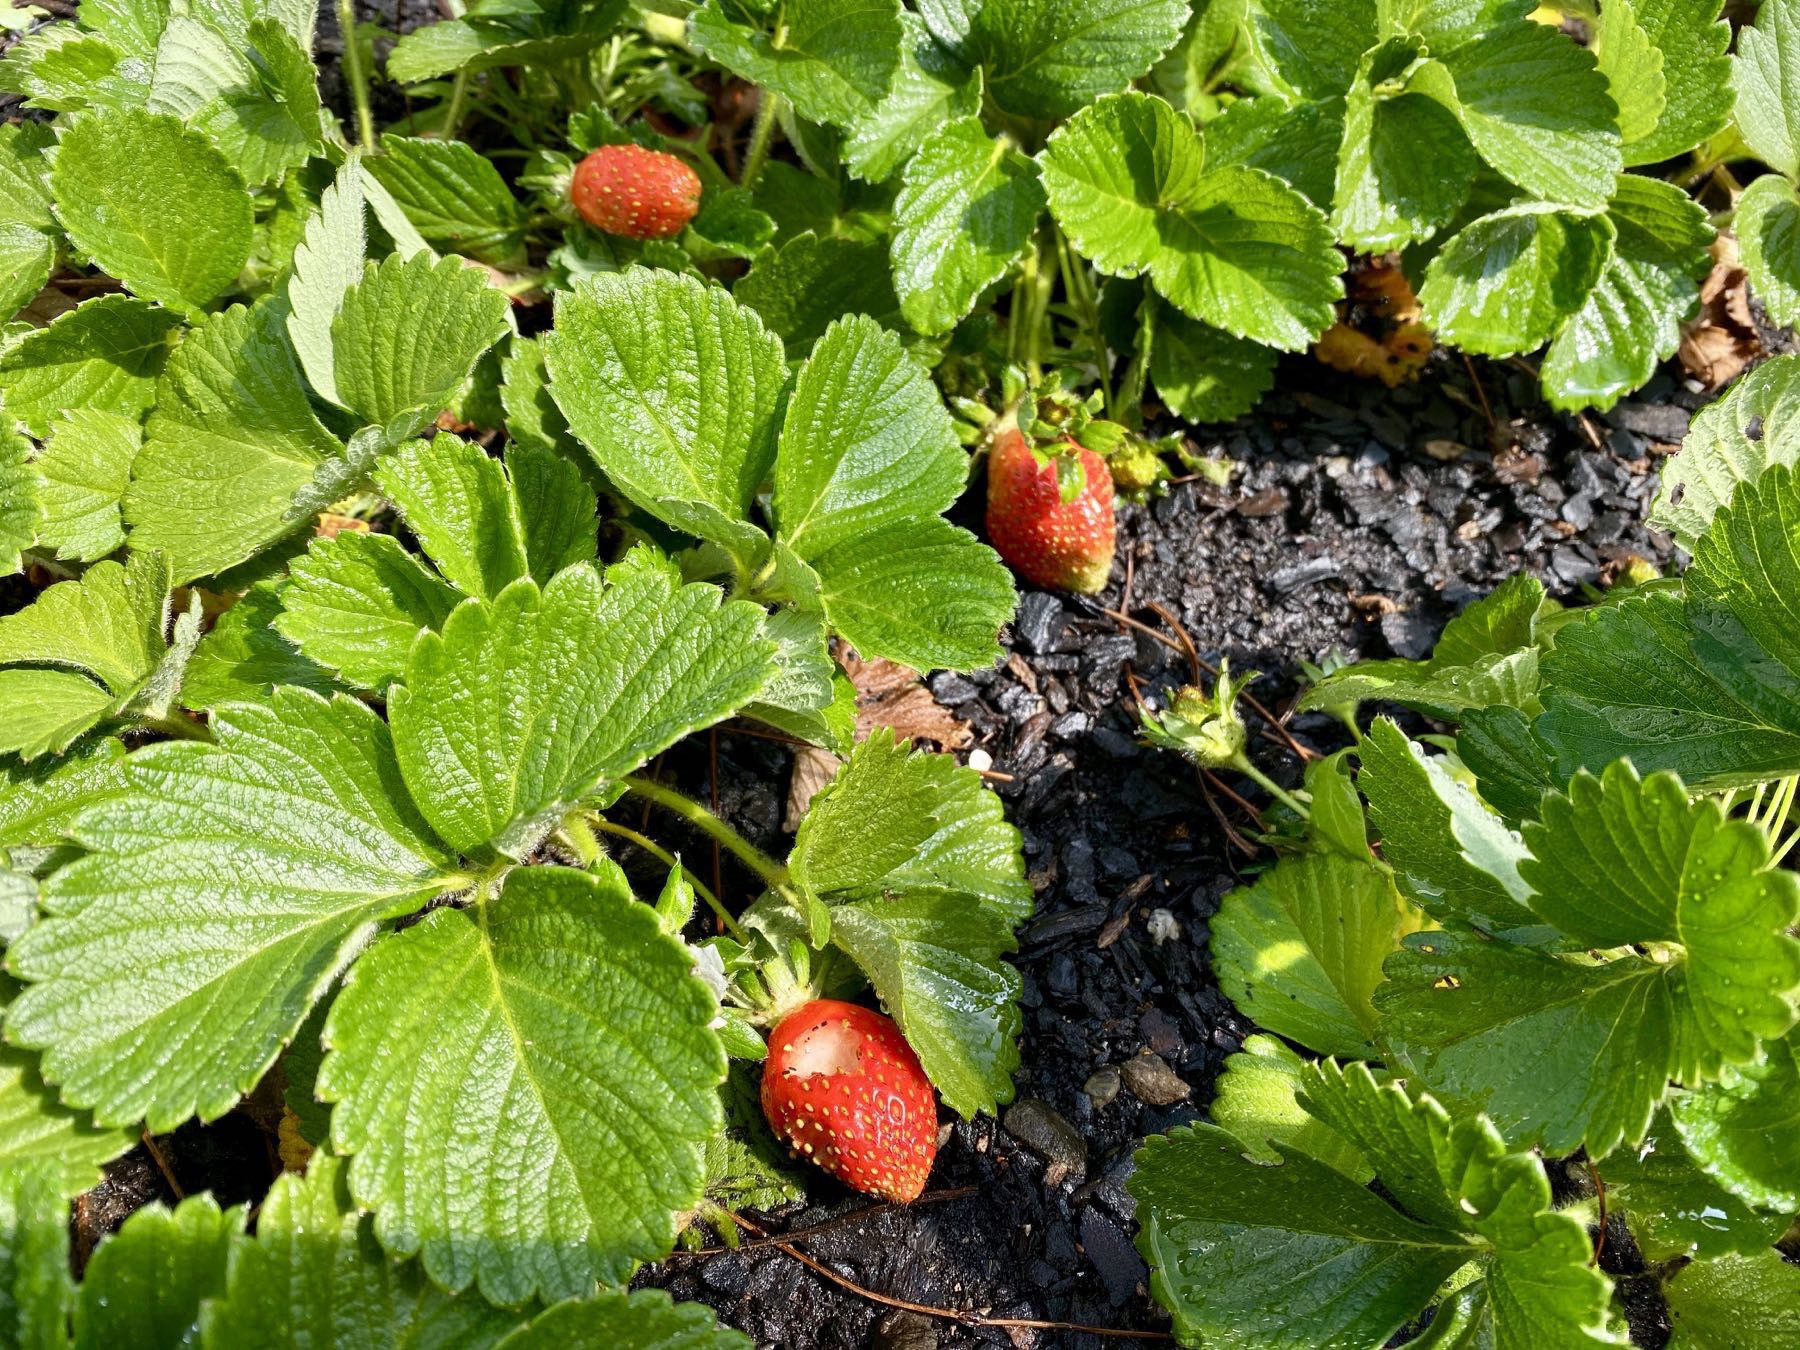 3 more or less ripe strawberries.